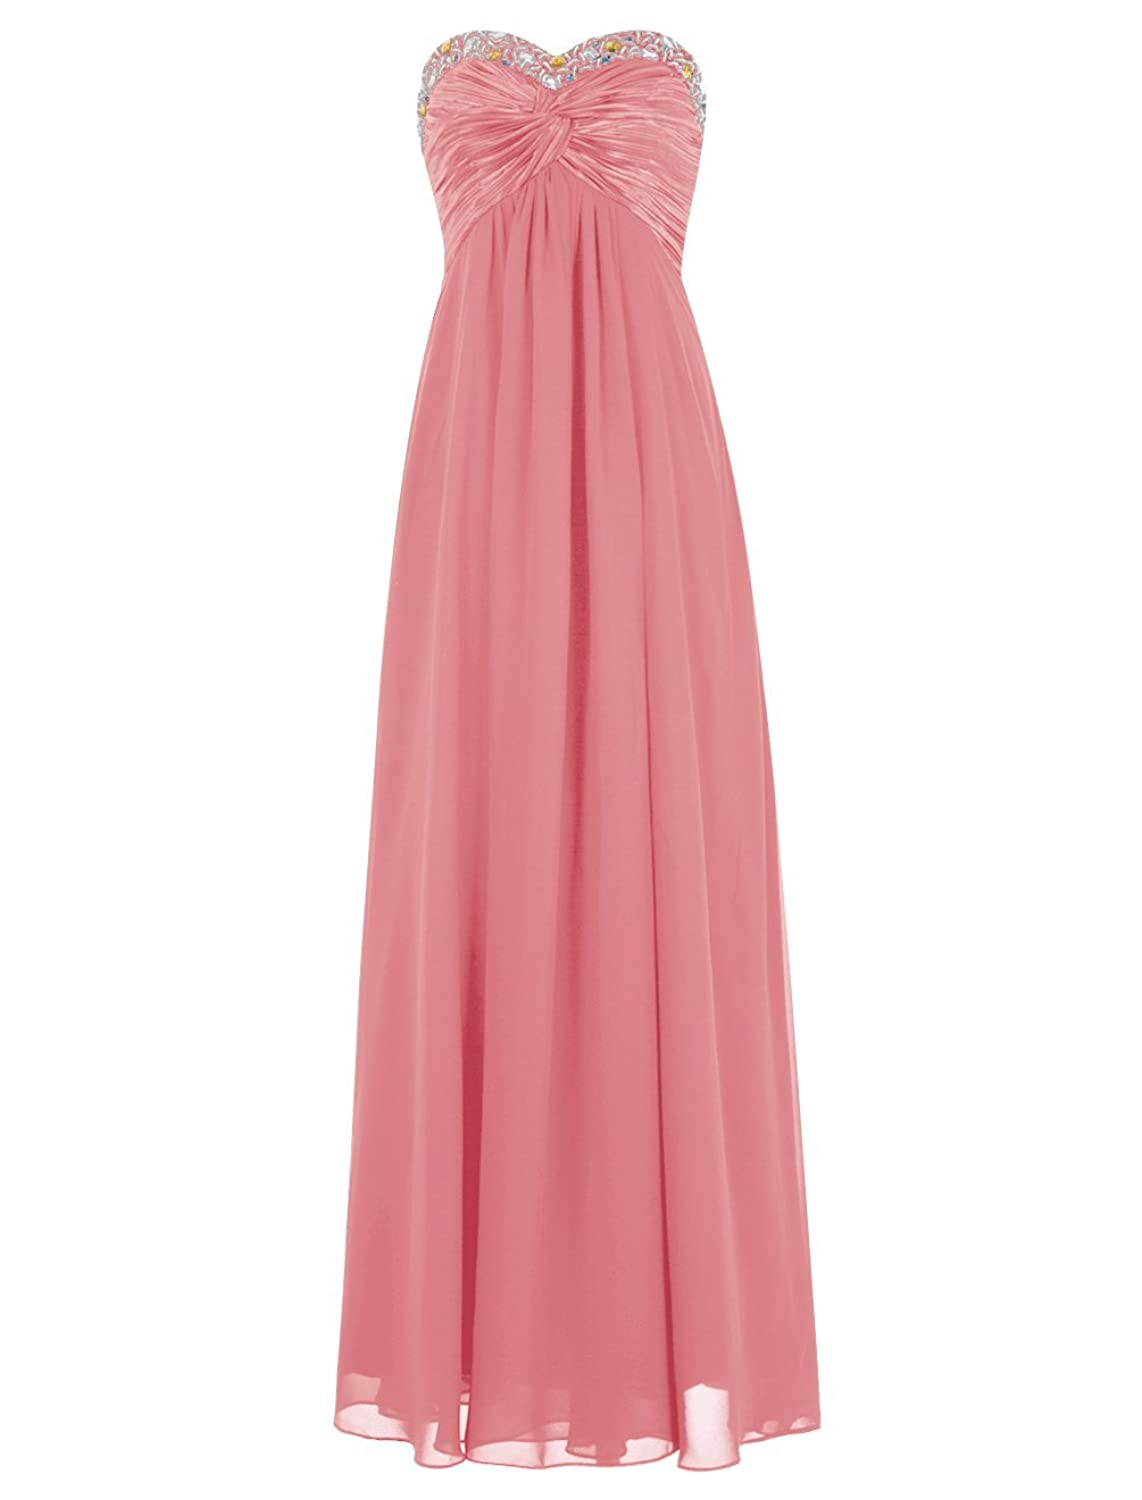 Dressystar Beaded Sweetheart Bridesmaid Chiffon Satin Dresses Long Evening Gowns